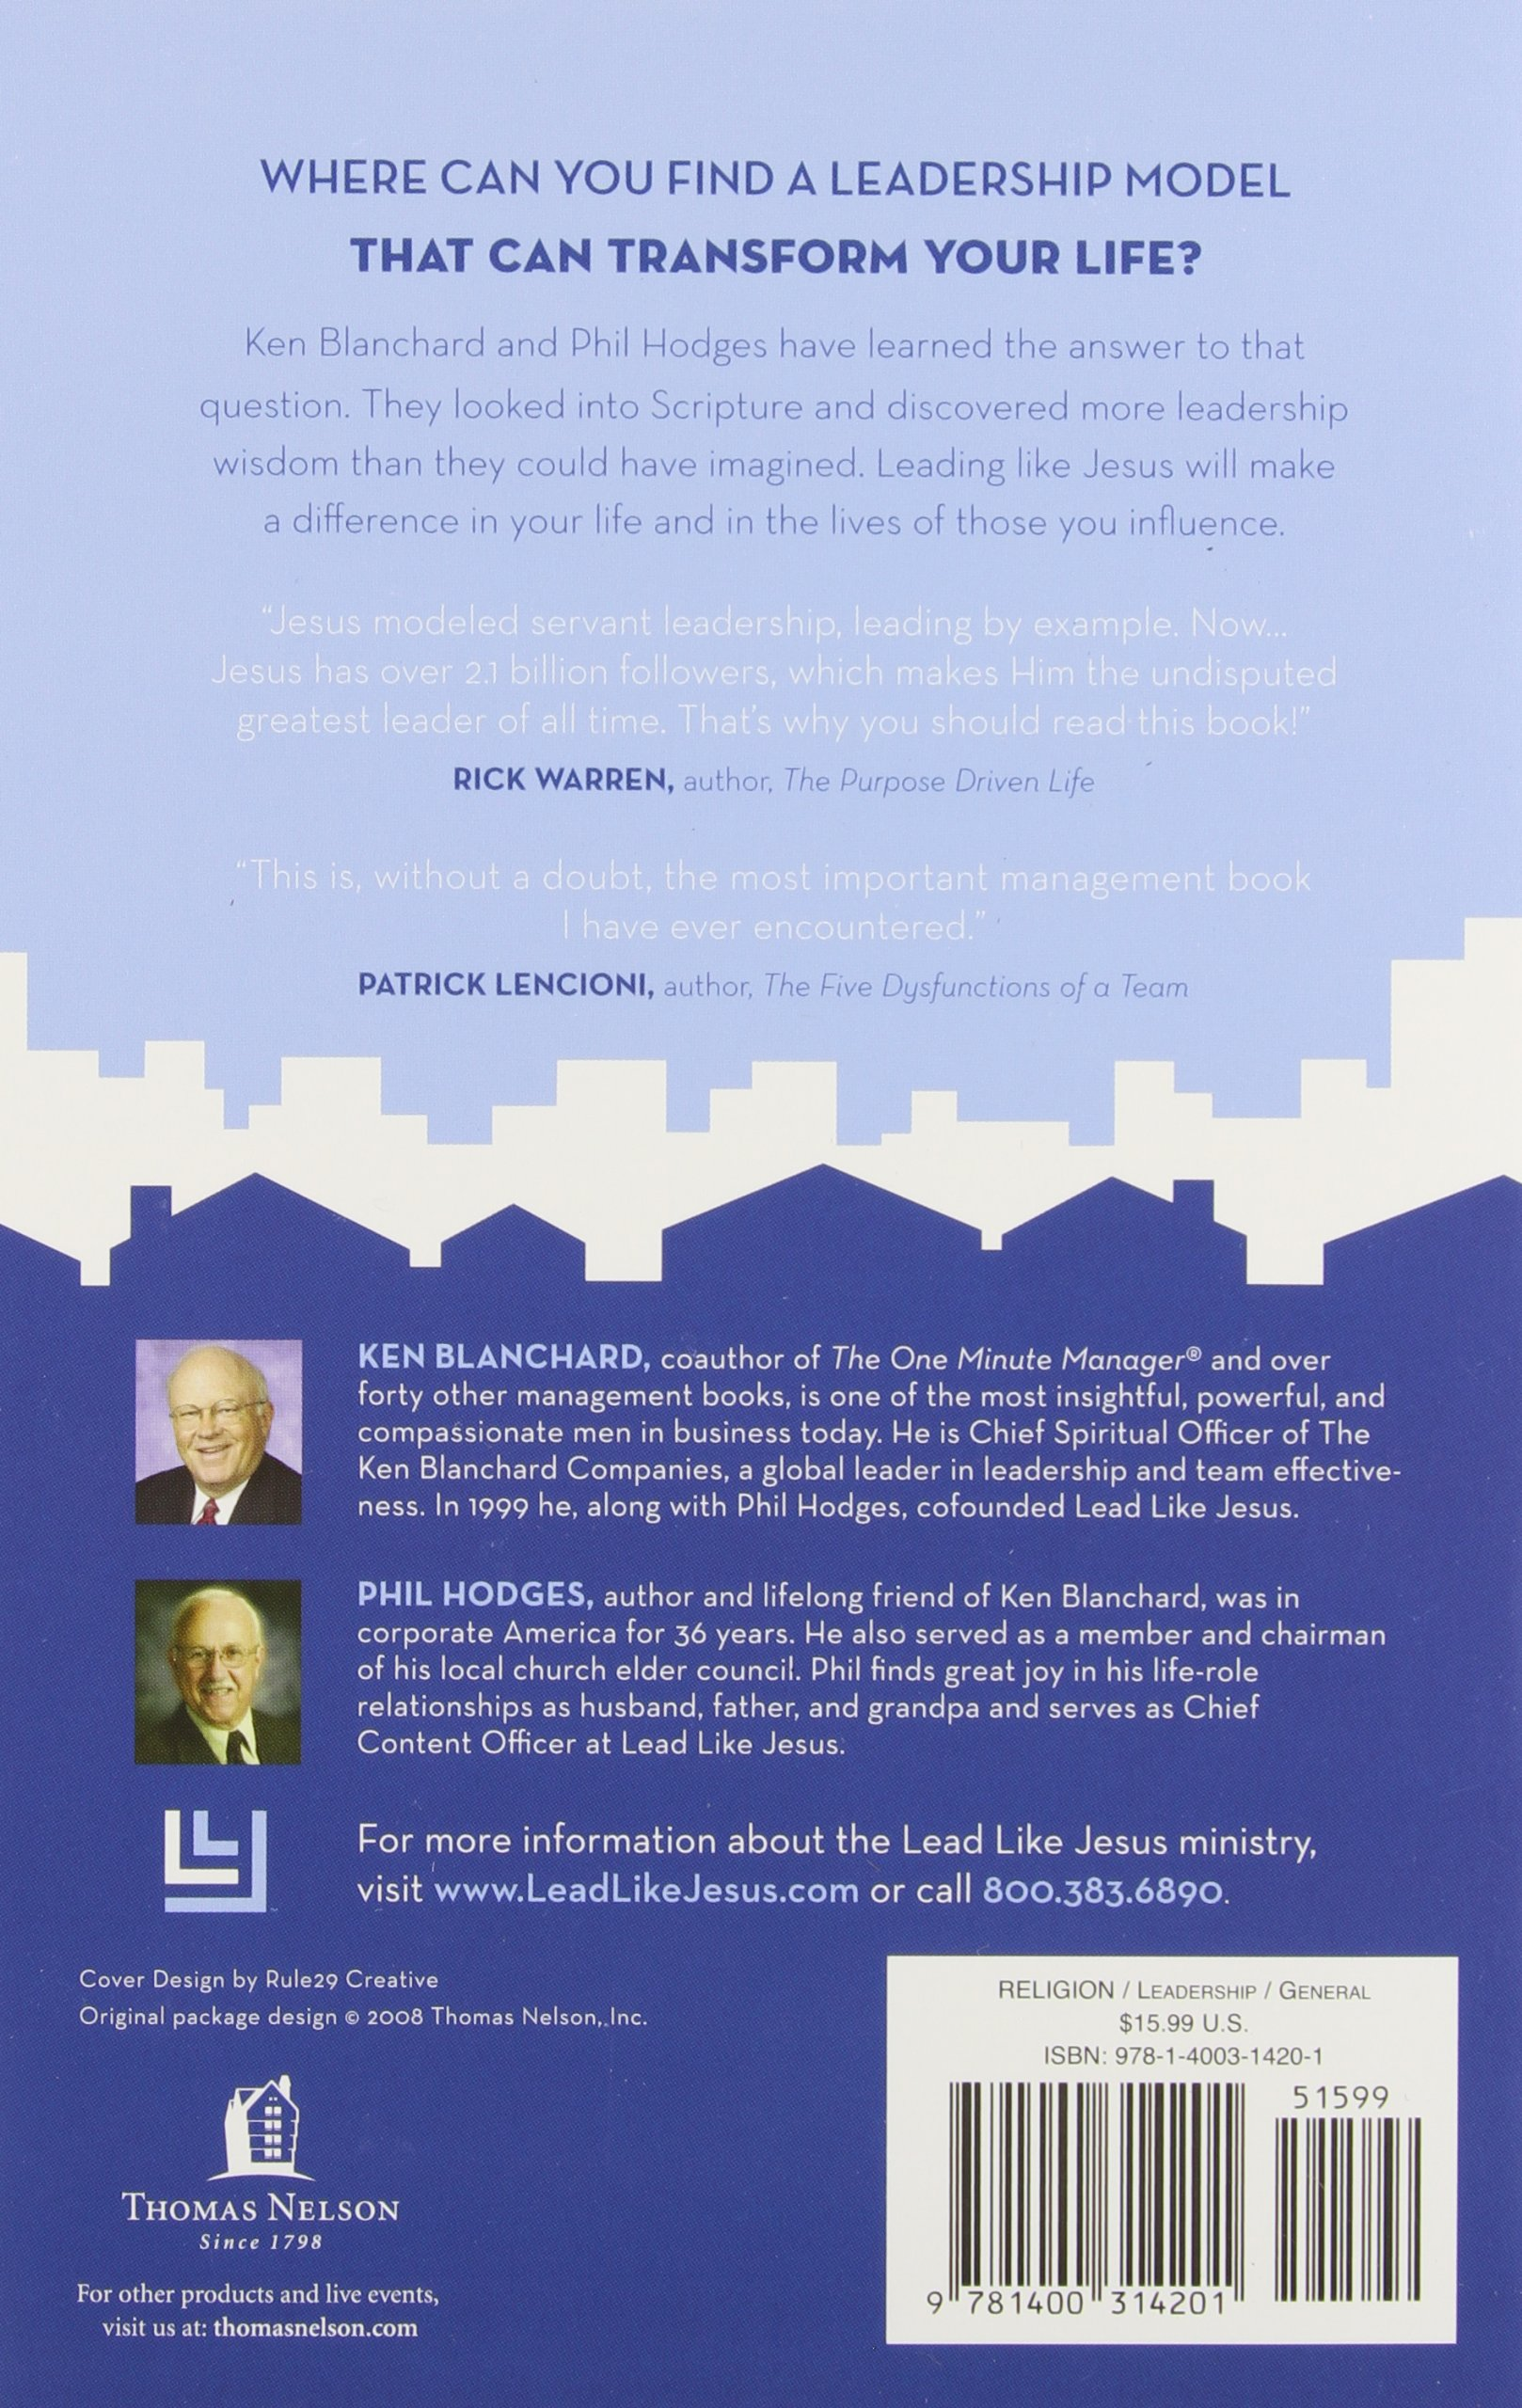 lead like jesus lessons from the greatest leadership role model lead like jesus lessons from the greatest leadership role model of all time ken blanchard phil hodges 9781400314201 amazon com books